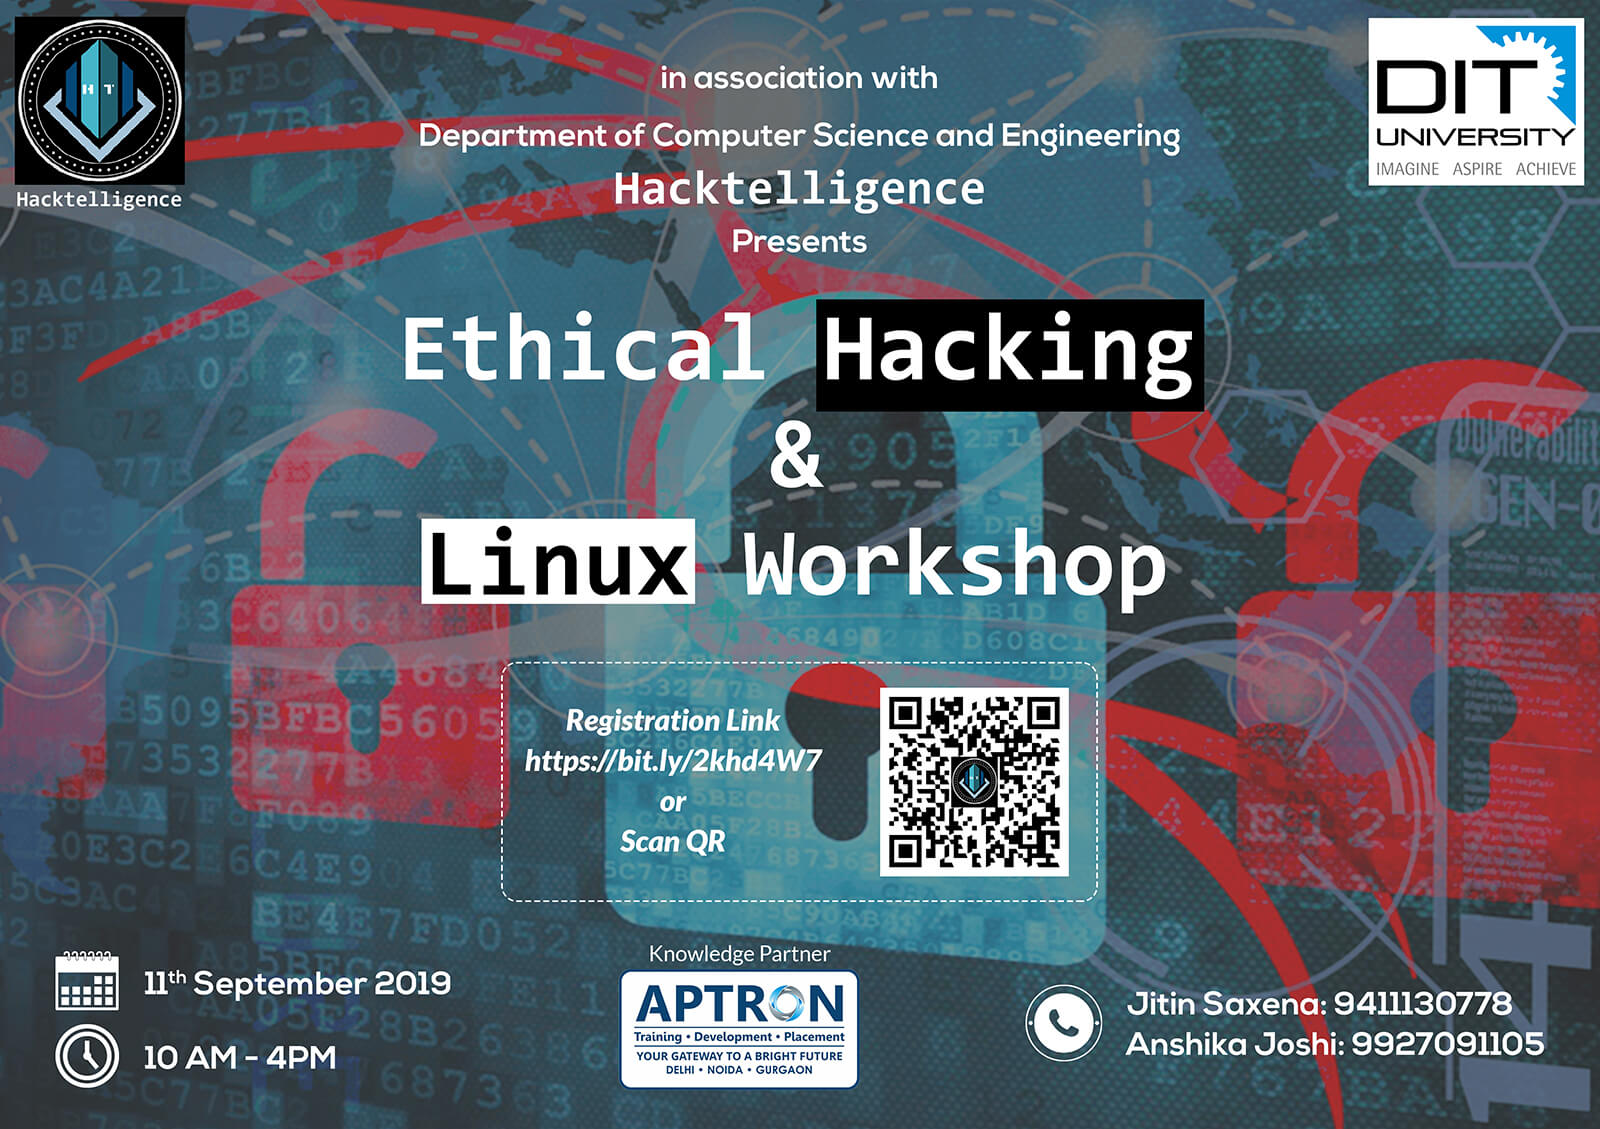 Workshop on 'Ethical Hacking & Linux' by Department of CSE